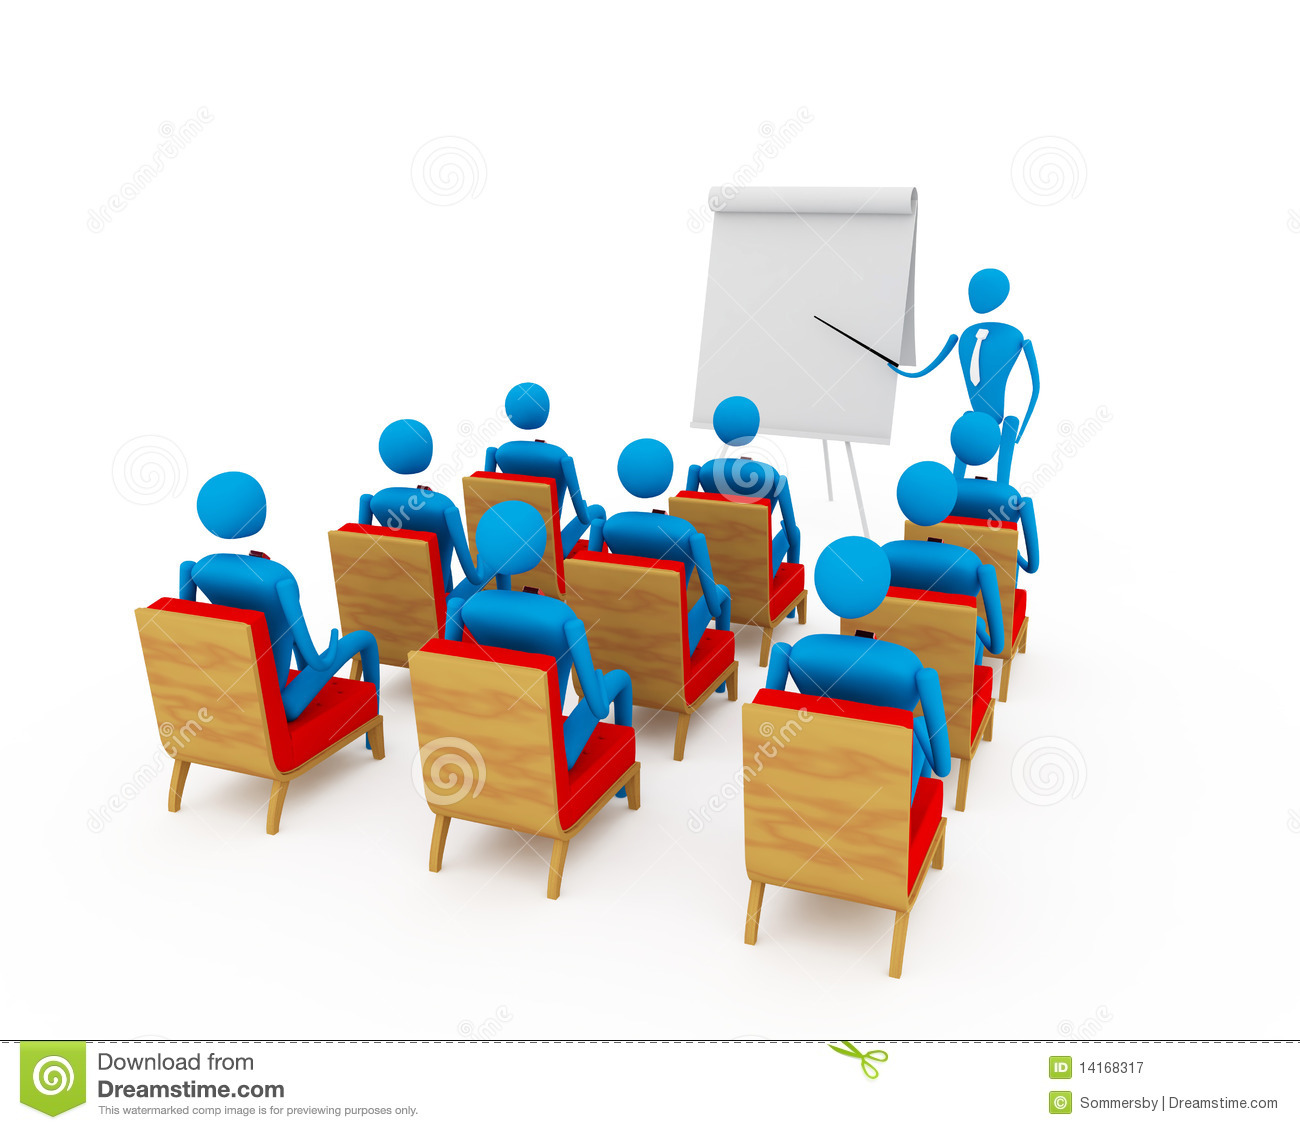 Group Presentation Clipart - Clipart Kid